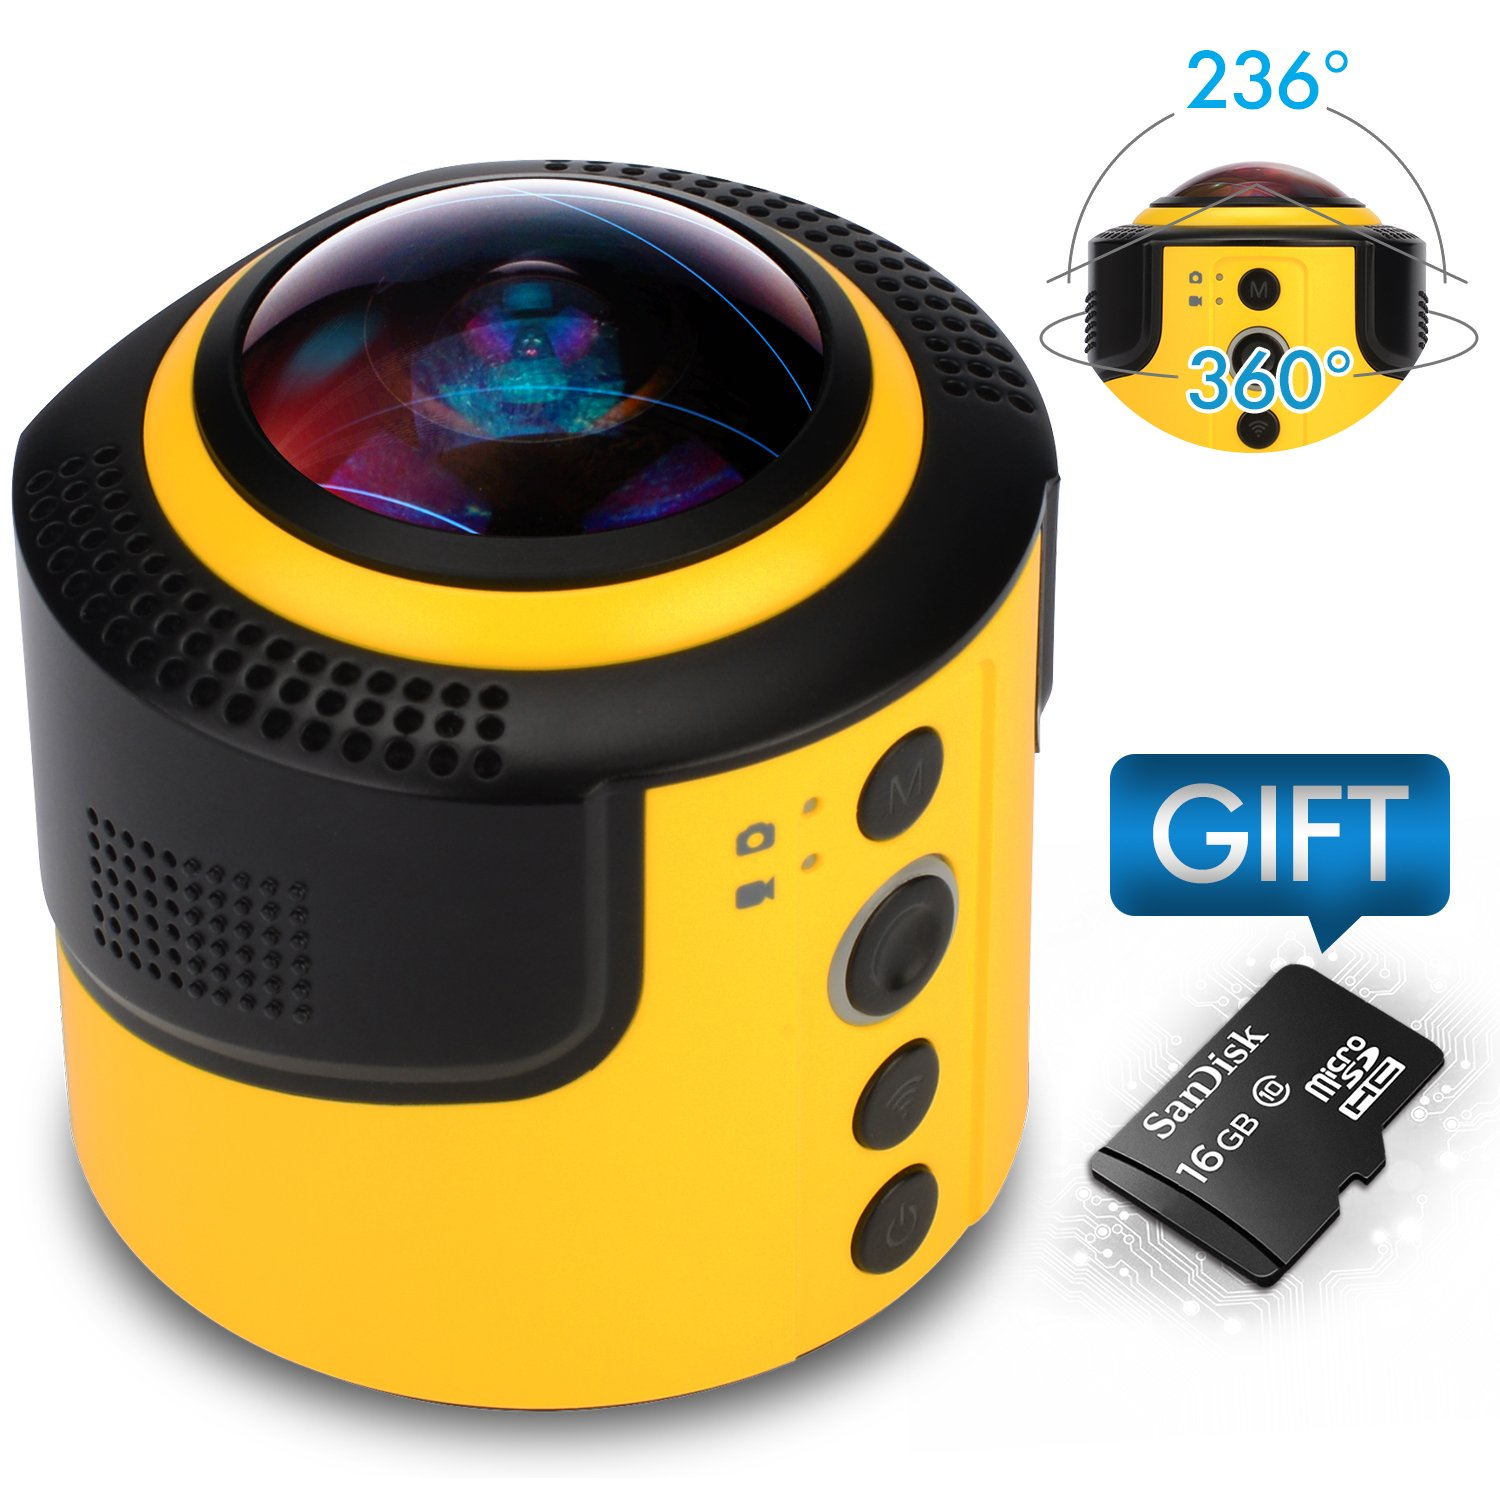 JoyPlus 360° Sports Video VR Cameras Spherical Panorama with Micro SD Card